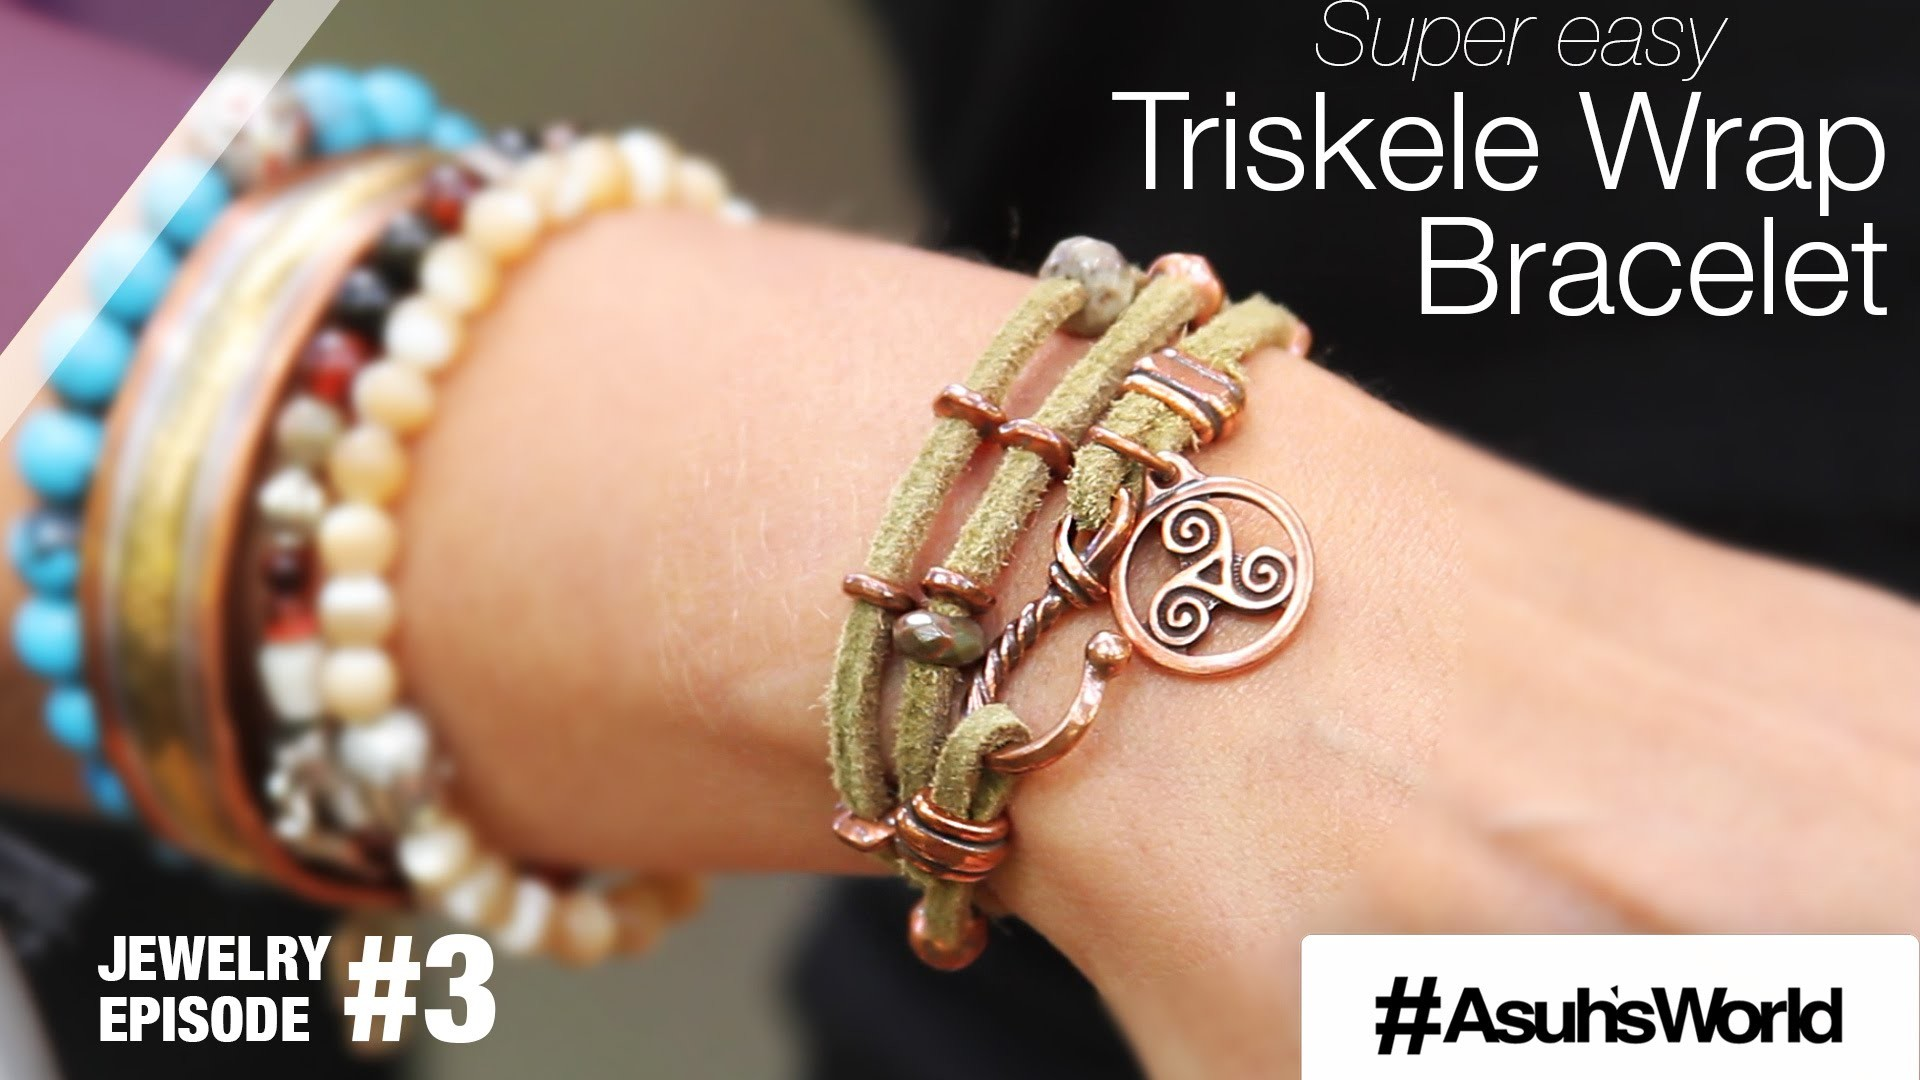 How to make a cool Bracelet out of the Tierra Cast Triskele Wrap Kit ?